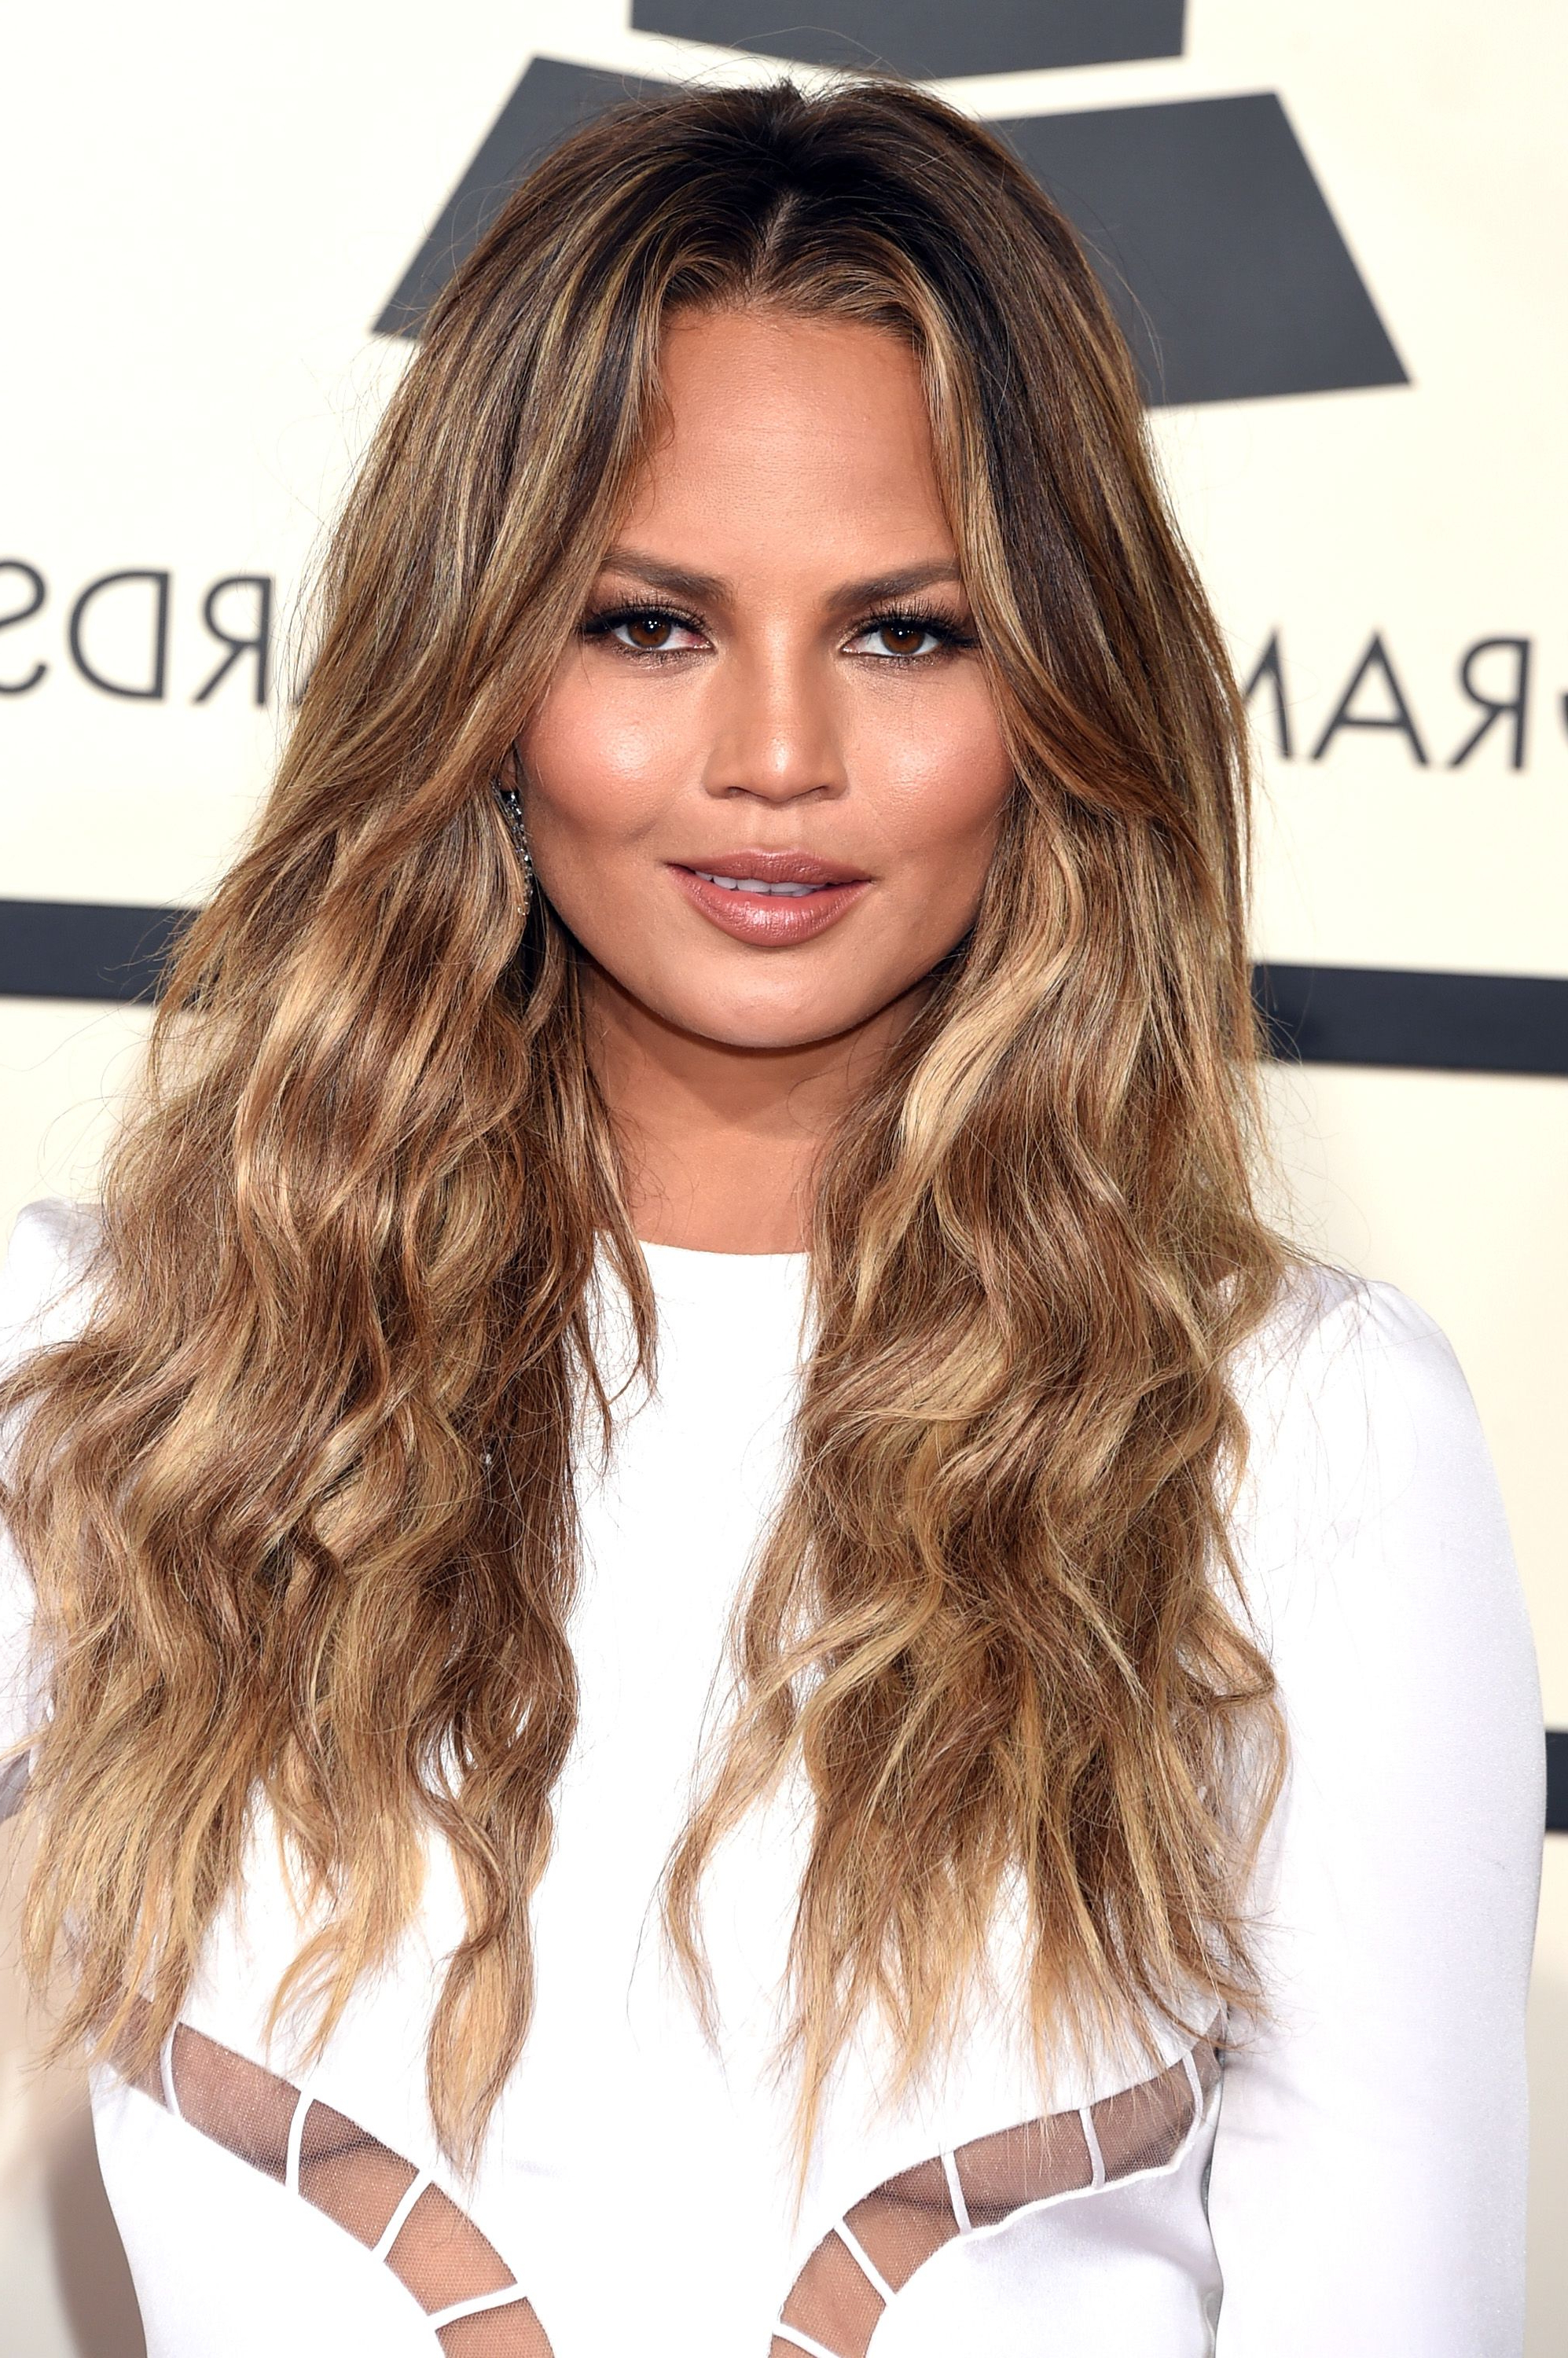 40 Best Layered Haircuts, Hairstyles & Trends For 2018 Regarding Best And Newest Long Voluminous Ombre Hairstyles With Layers (View 19 of 20)